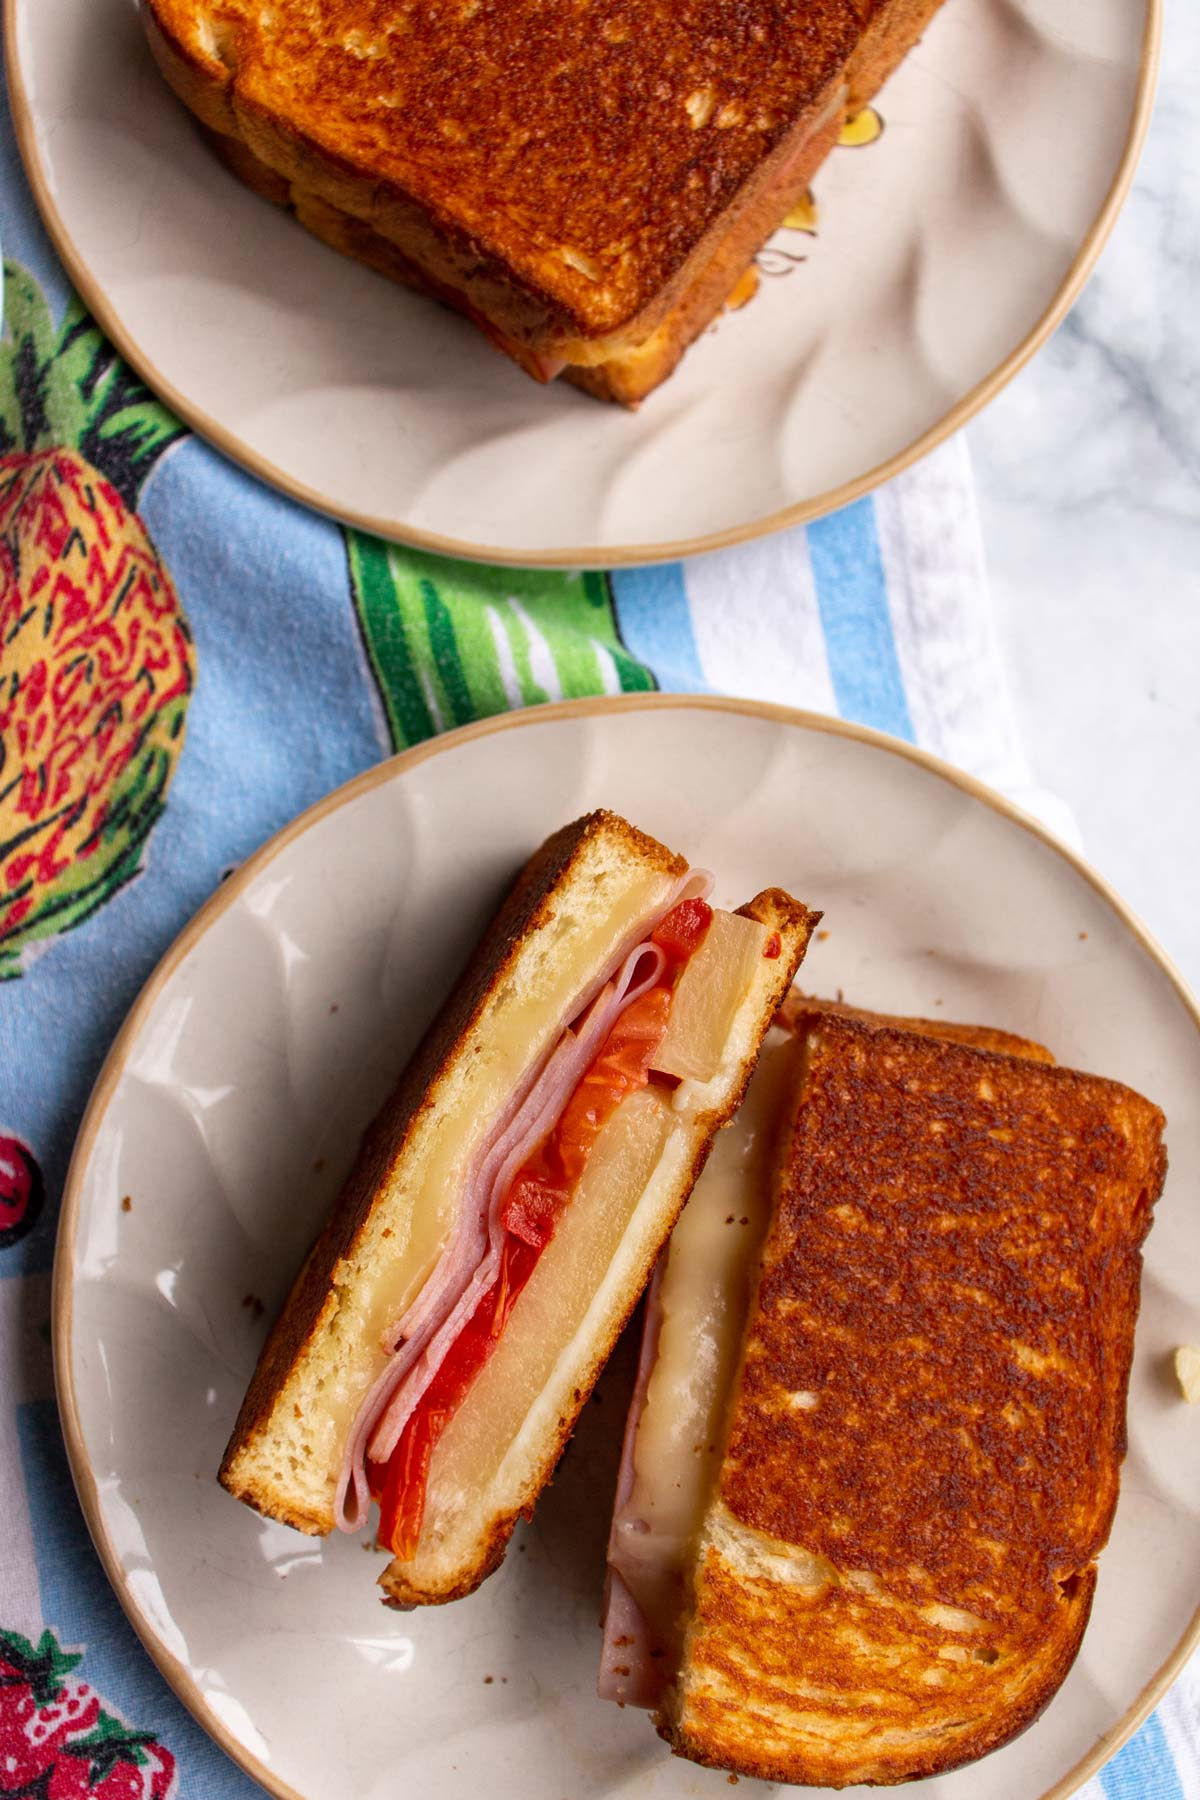 A halved Hawaiian grilled cheese sandwich on a plate showing off the ham and pineapple filling.